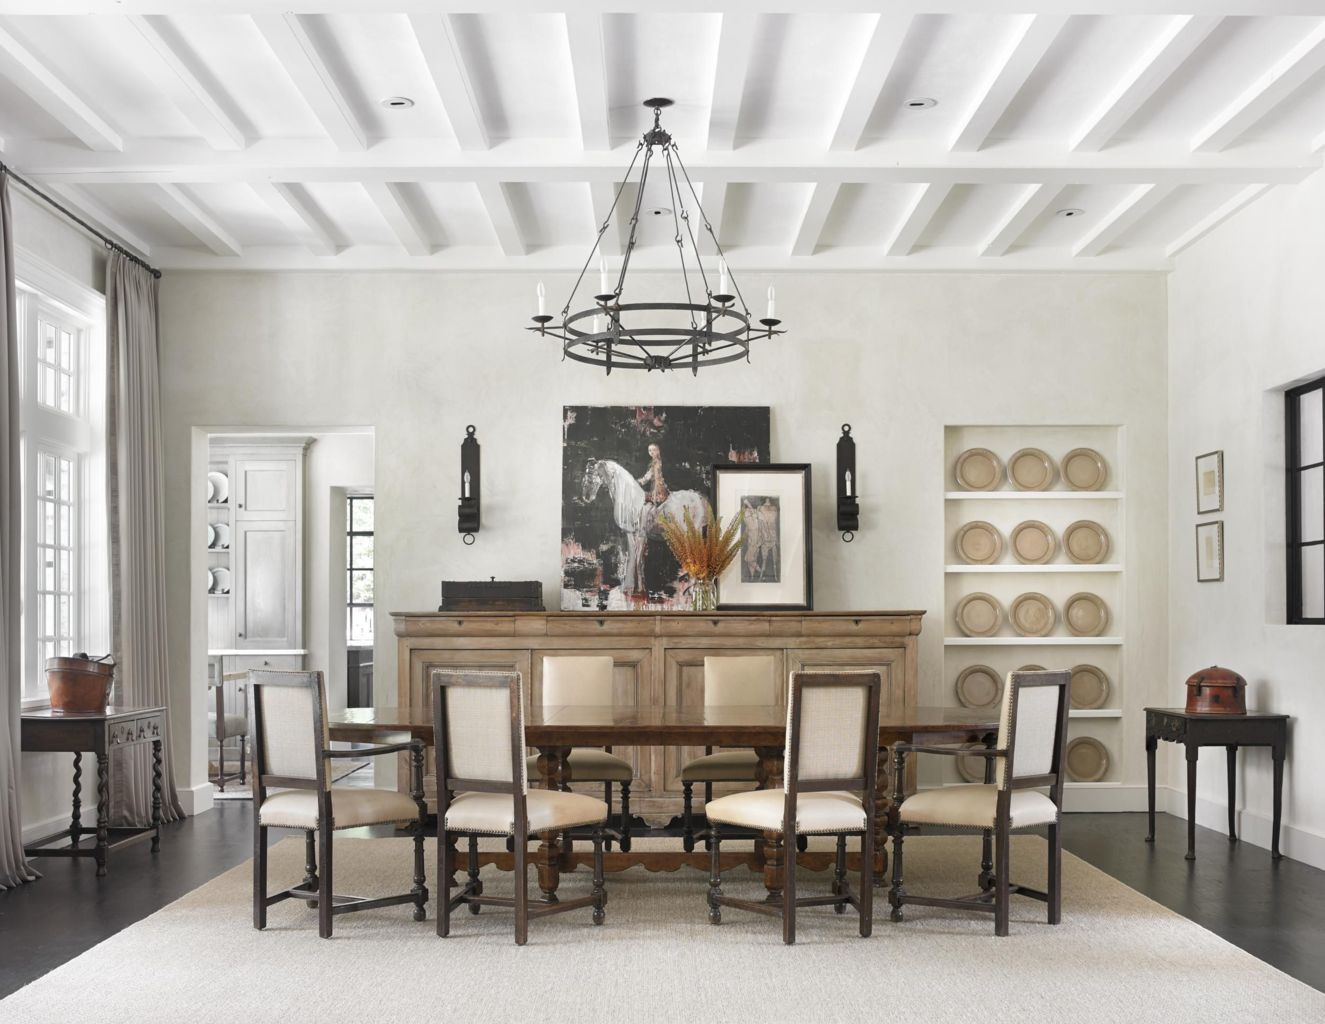 Traditional Chandelier Designs for Dining Rooms that Add Interiors Vintage Charms Part 29